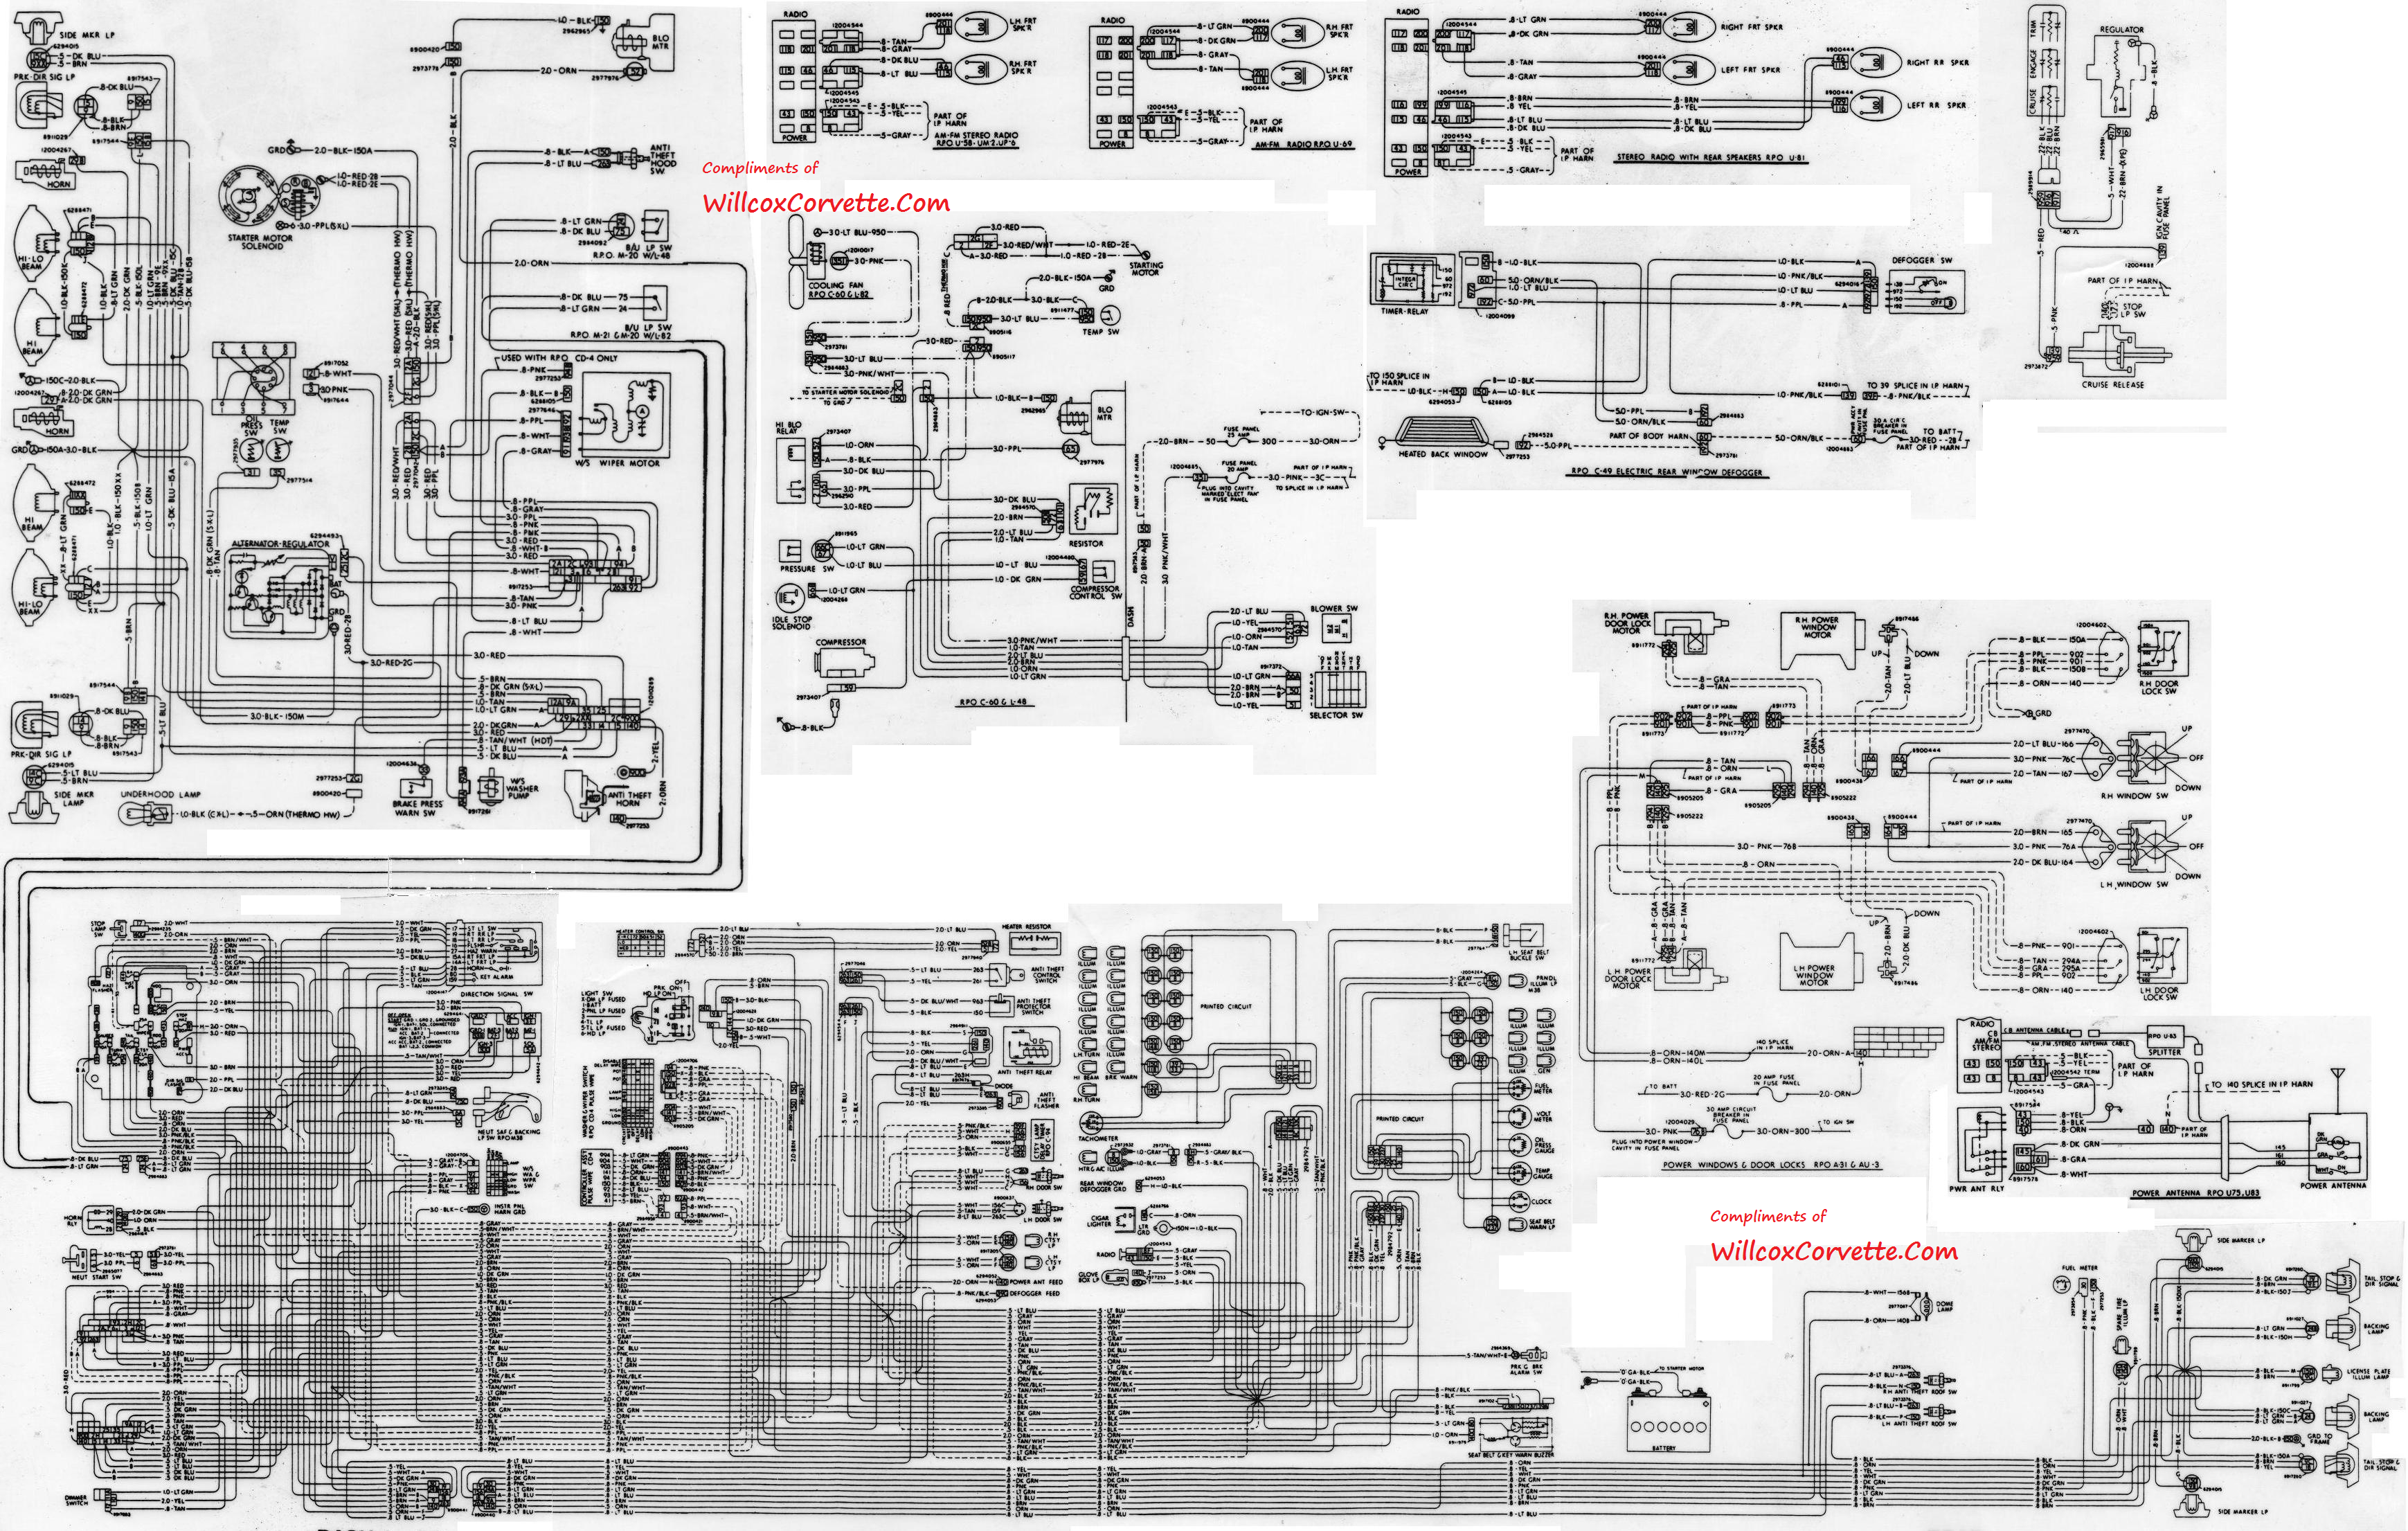 1979 wiring diagram corvetteforum chevrolet corvette forum rh corvetteforum com 2015 corvette wiring diagram 1971 Corvette Wiring Diagram PDF